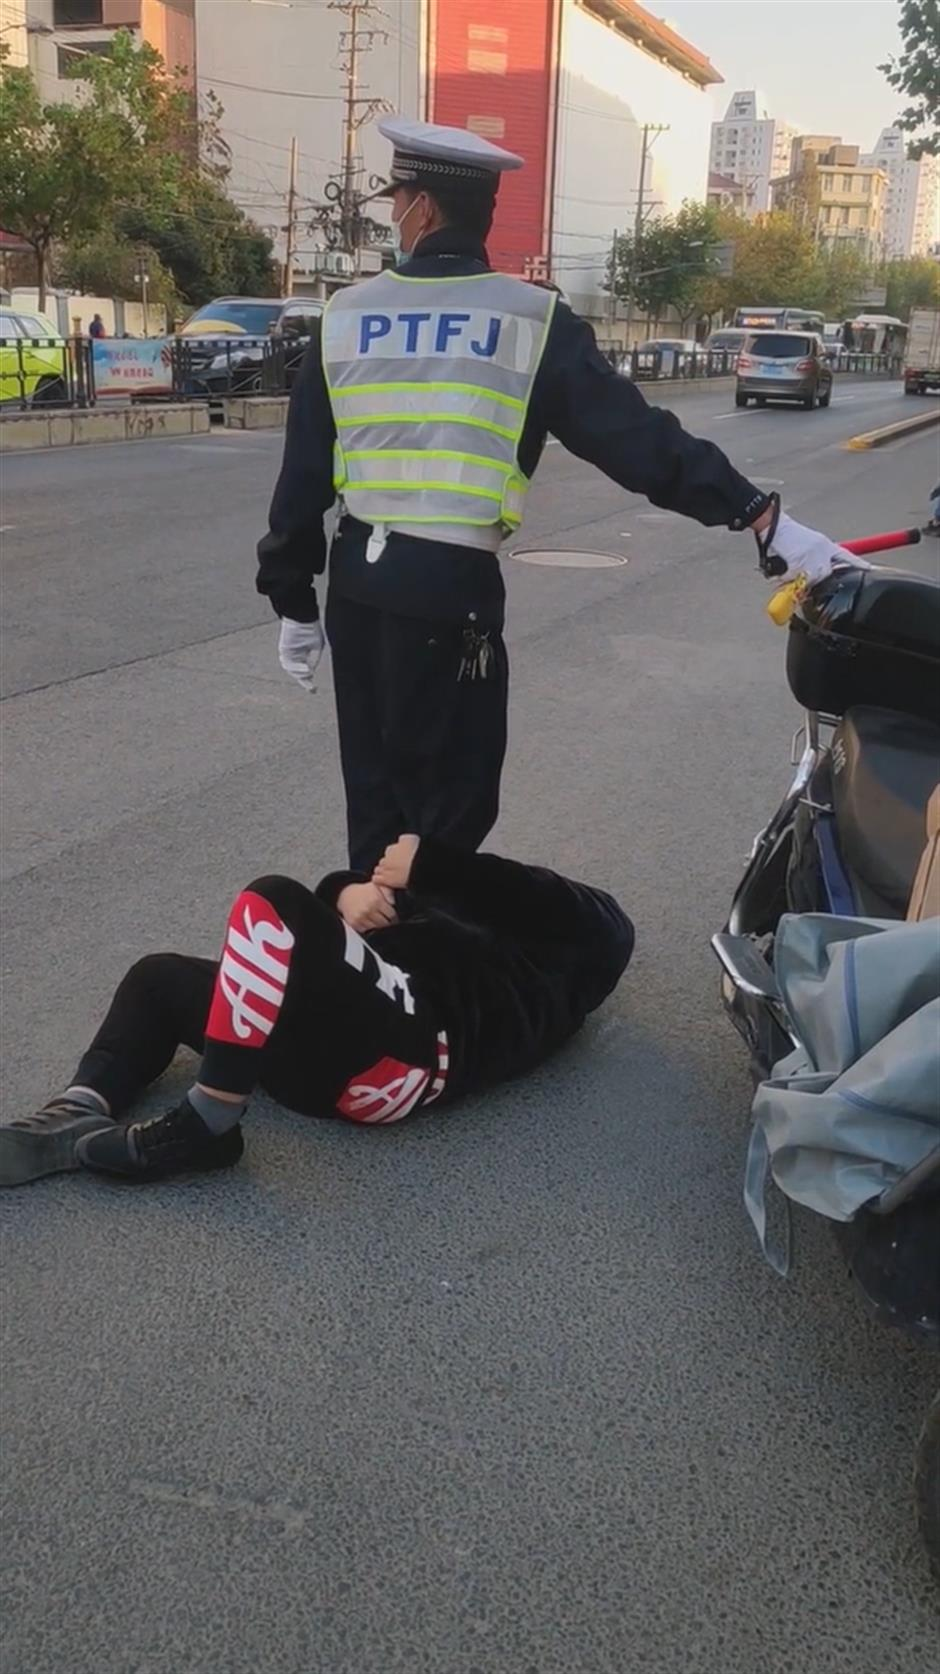 Police assistant didnt attack traffic offender: police